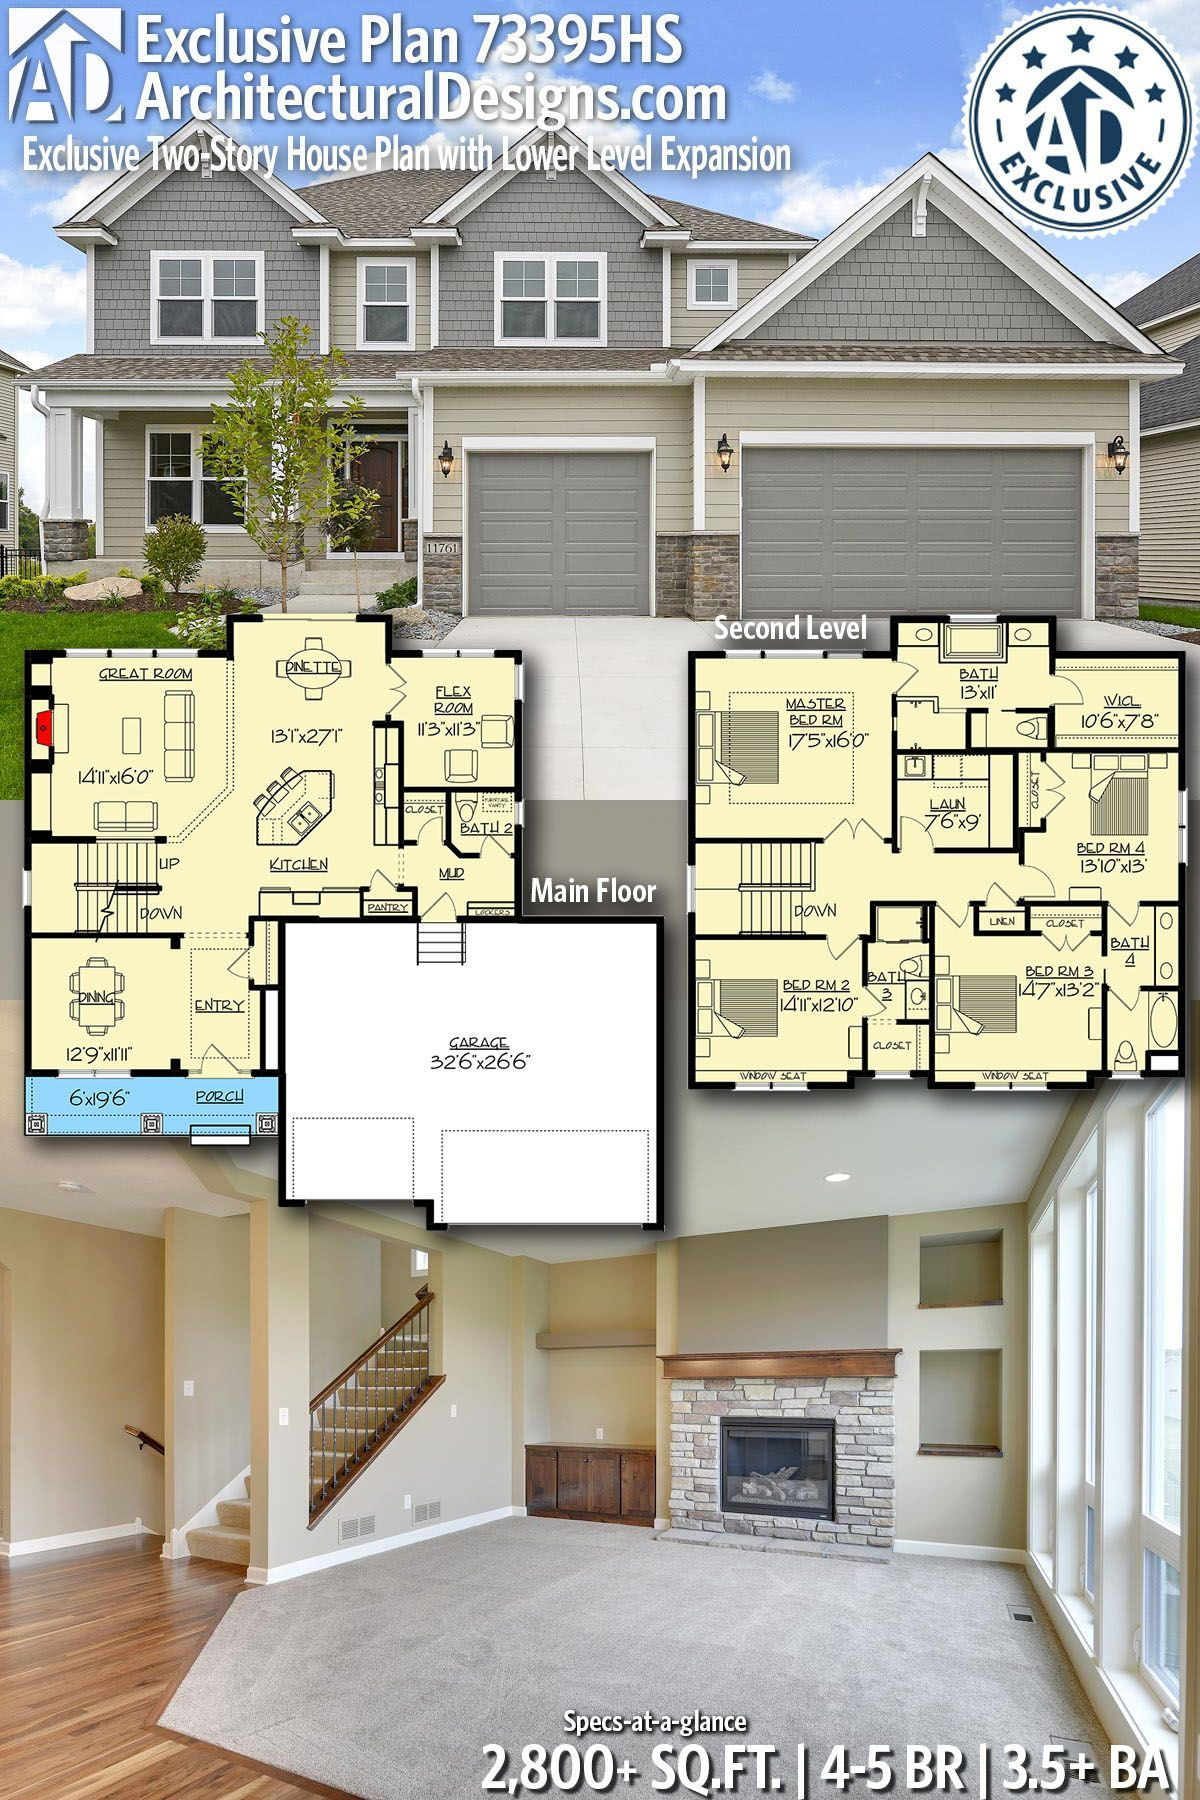 Architectural Designs Exclusive Home Plan 73395HS gives you 4-5 bedrooms, 3.5 ba...        Architectural Designs Exclusive Home Plan 73395HS gives you 4-5 bedrooms, 3.5 baths and 2,800+ sq. ft. With an optional lower level! Ready when you are! Where do YOU want to build? #73395HS #adhouseplans #newamerican #architecturaldesigns #houseplans #architecture #newhome #craftsman #exclusive #northwest #newconstruction #newhouse  #homeplans #architecture #home #homesweethome